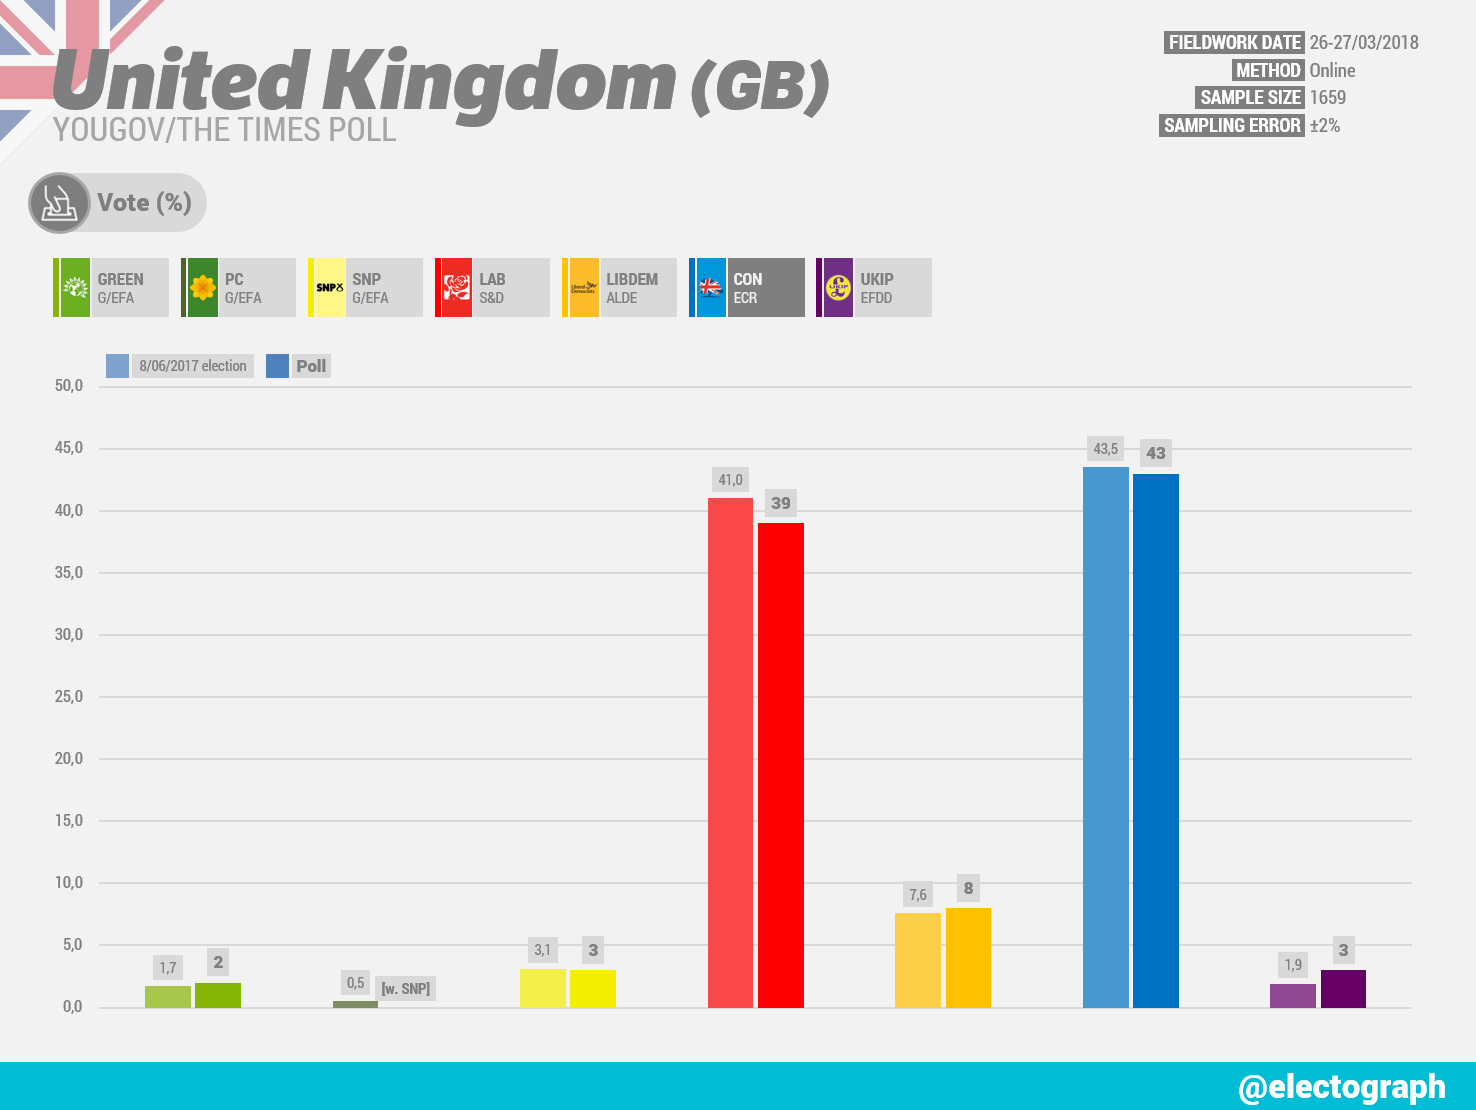 UNITED KINGDOM YouGov poll chart for The Times, March 2018